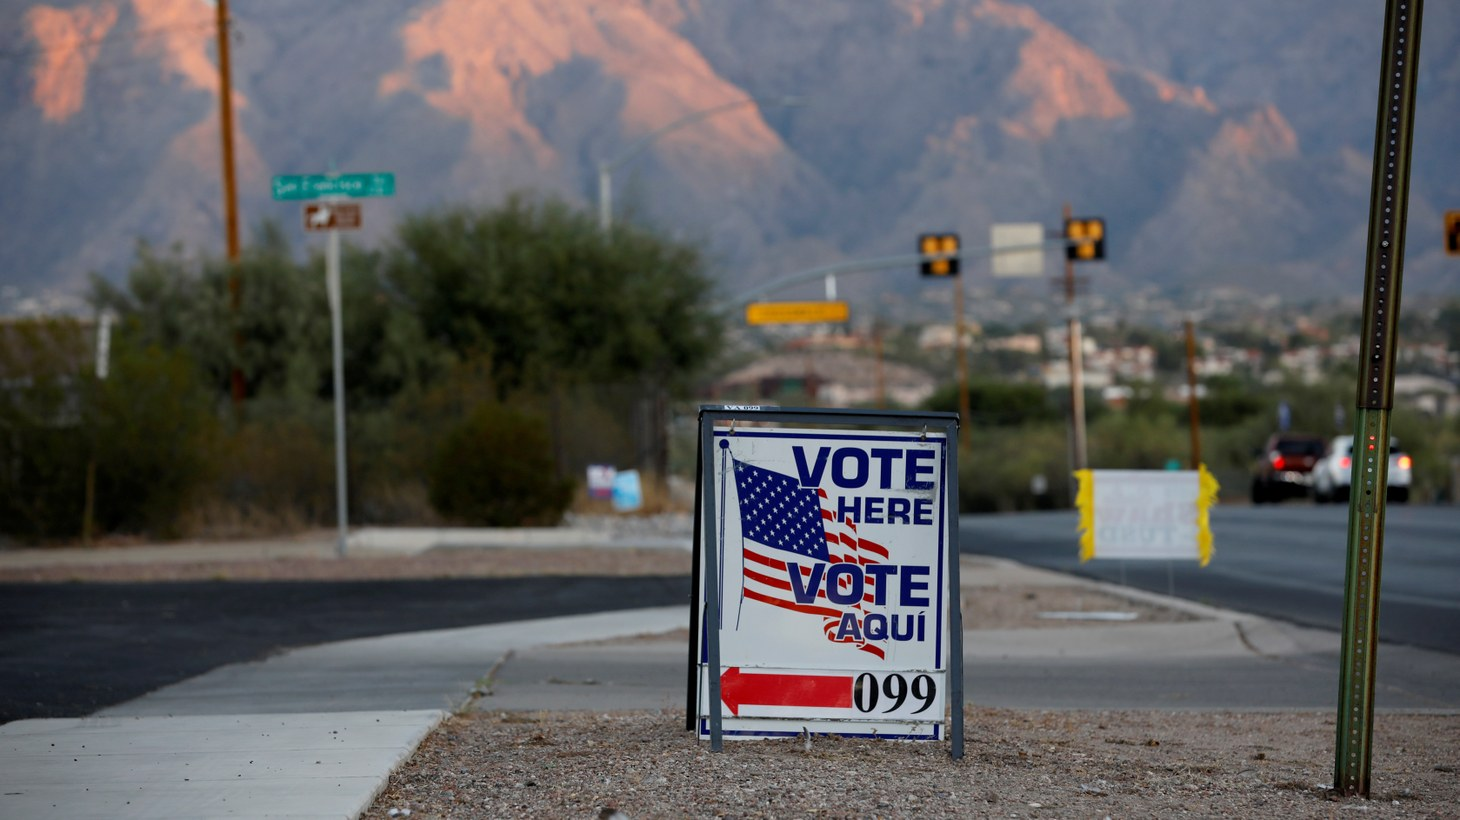 A sign directs voters to a polling station on Election Day in Tucson, Arizona, U.S. November 3, 2020.